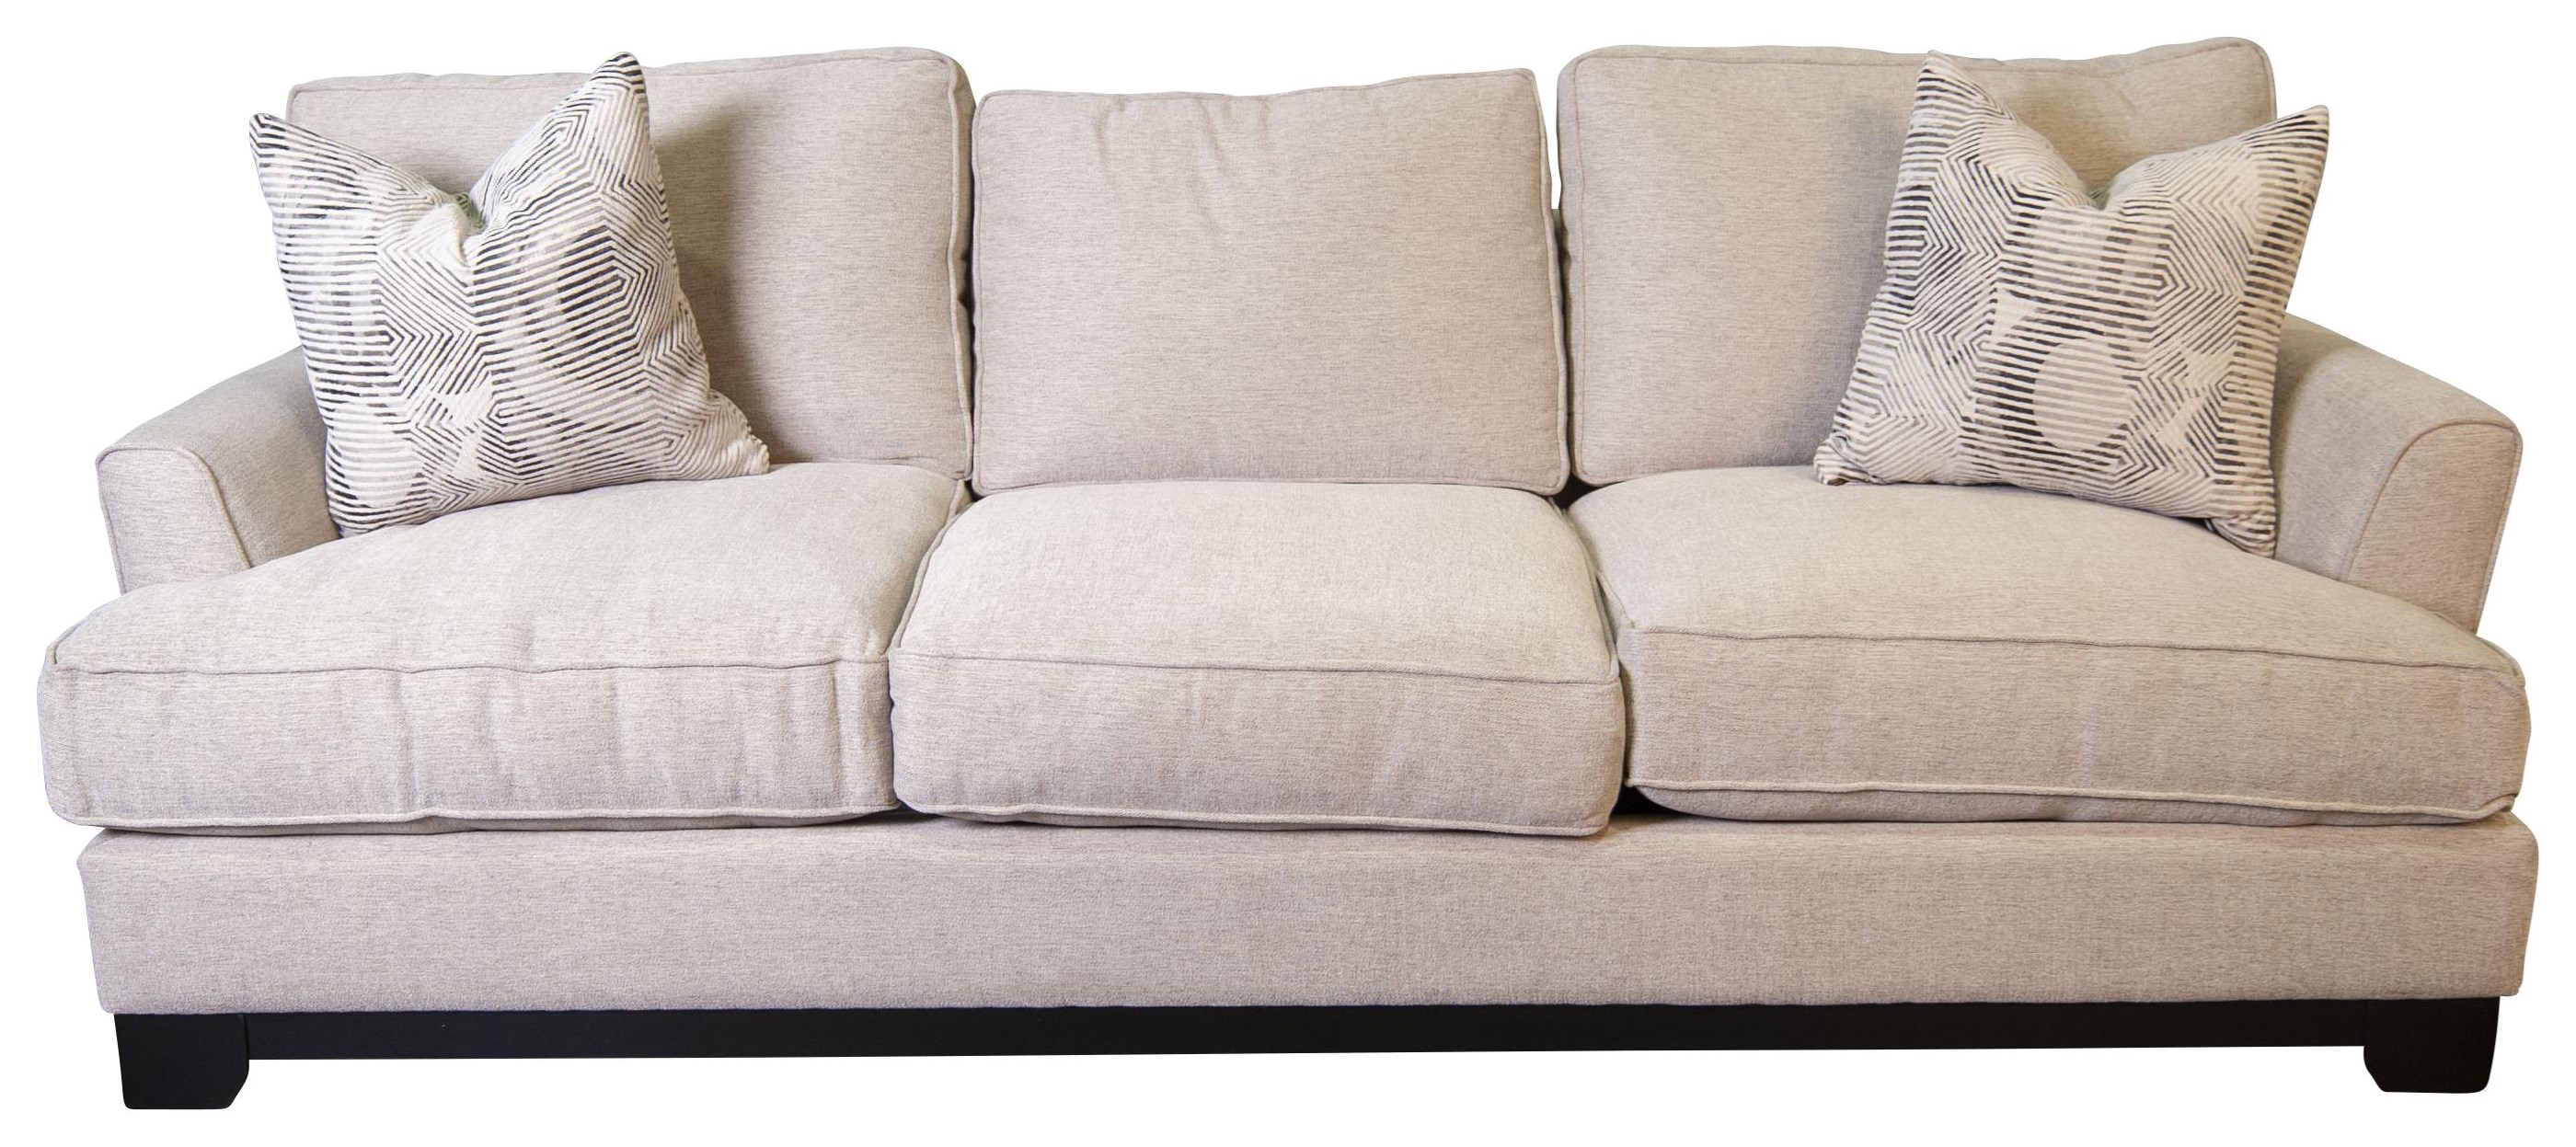 Paisley  Paisley Estate Sofa with Accent Pillows by Jonathan Louis at Morris Home